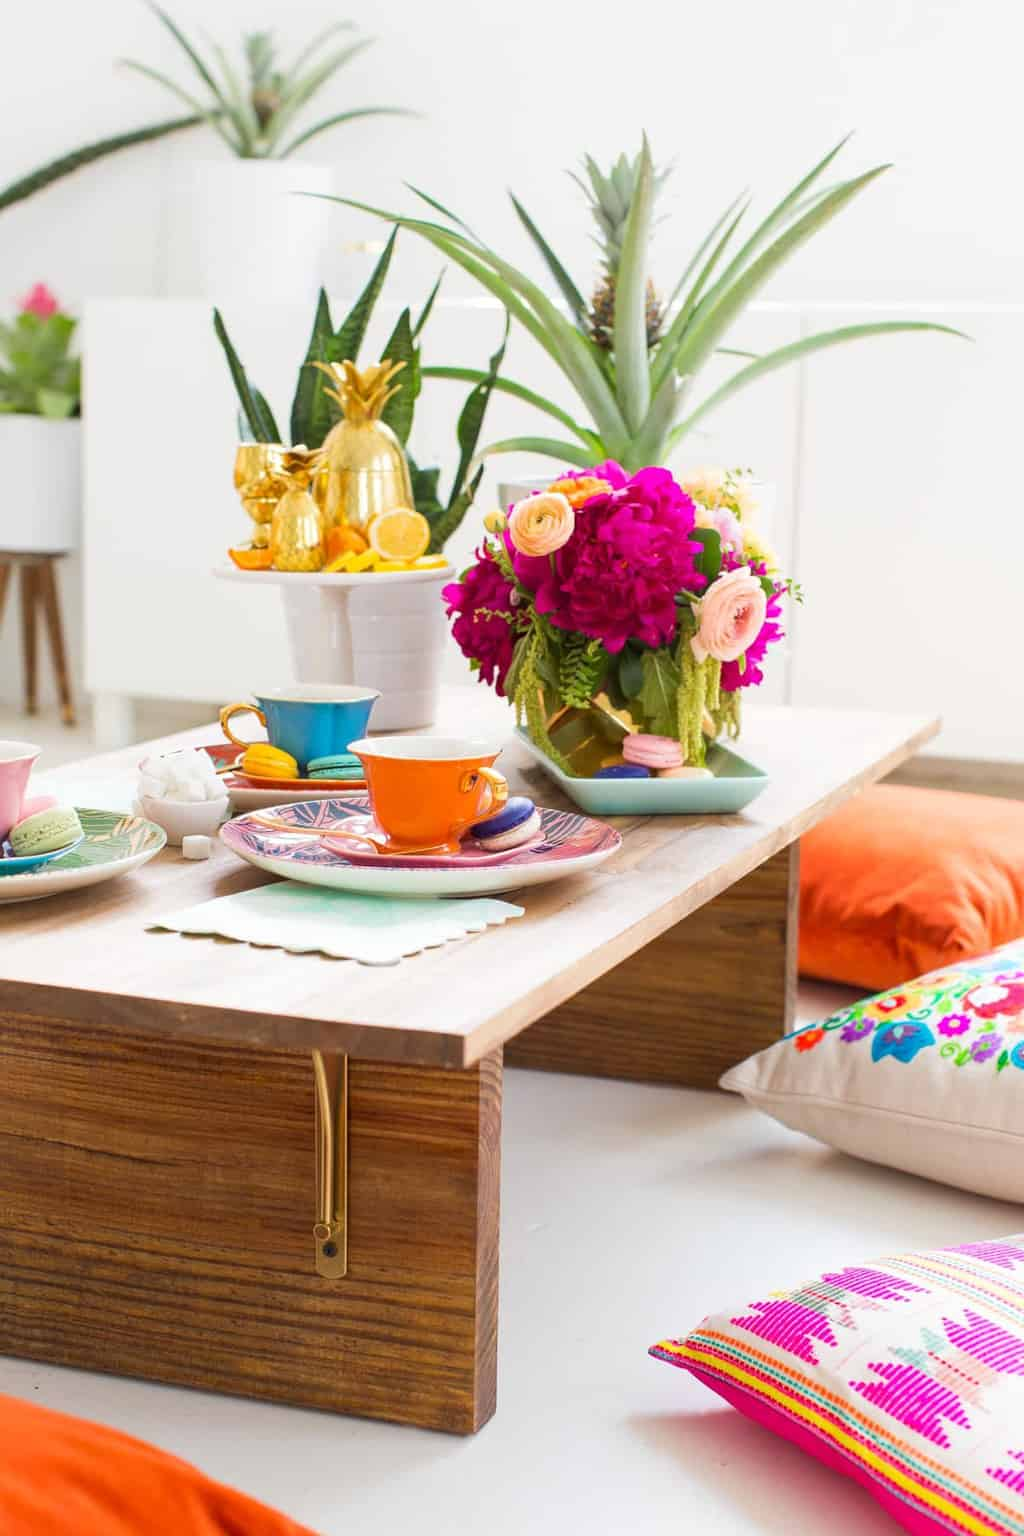 DIY Low Floor Table Tutorial perfect for floor seating ! Sugar & Cloth by Top Houston Lifestyle Blogger Ashley Rose #diy #table #lowtable #floorseating #wood #simple #tablediy #homedecor #diydecor